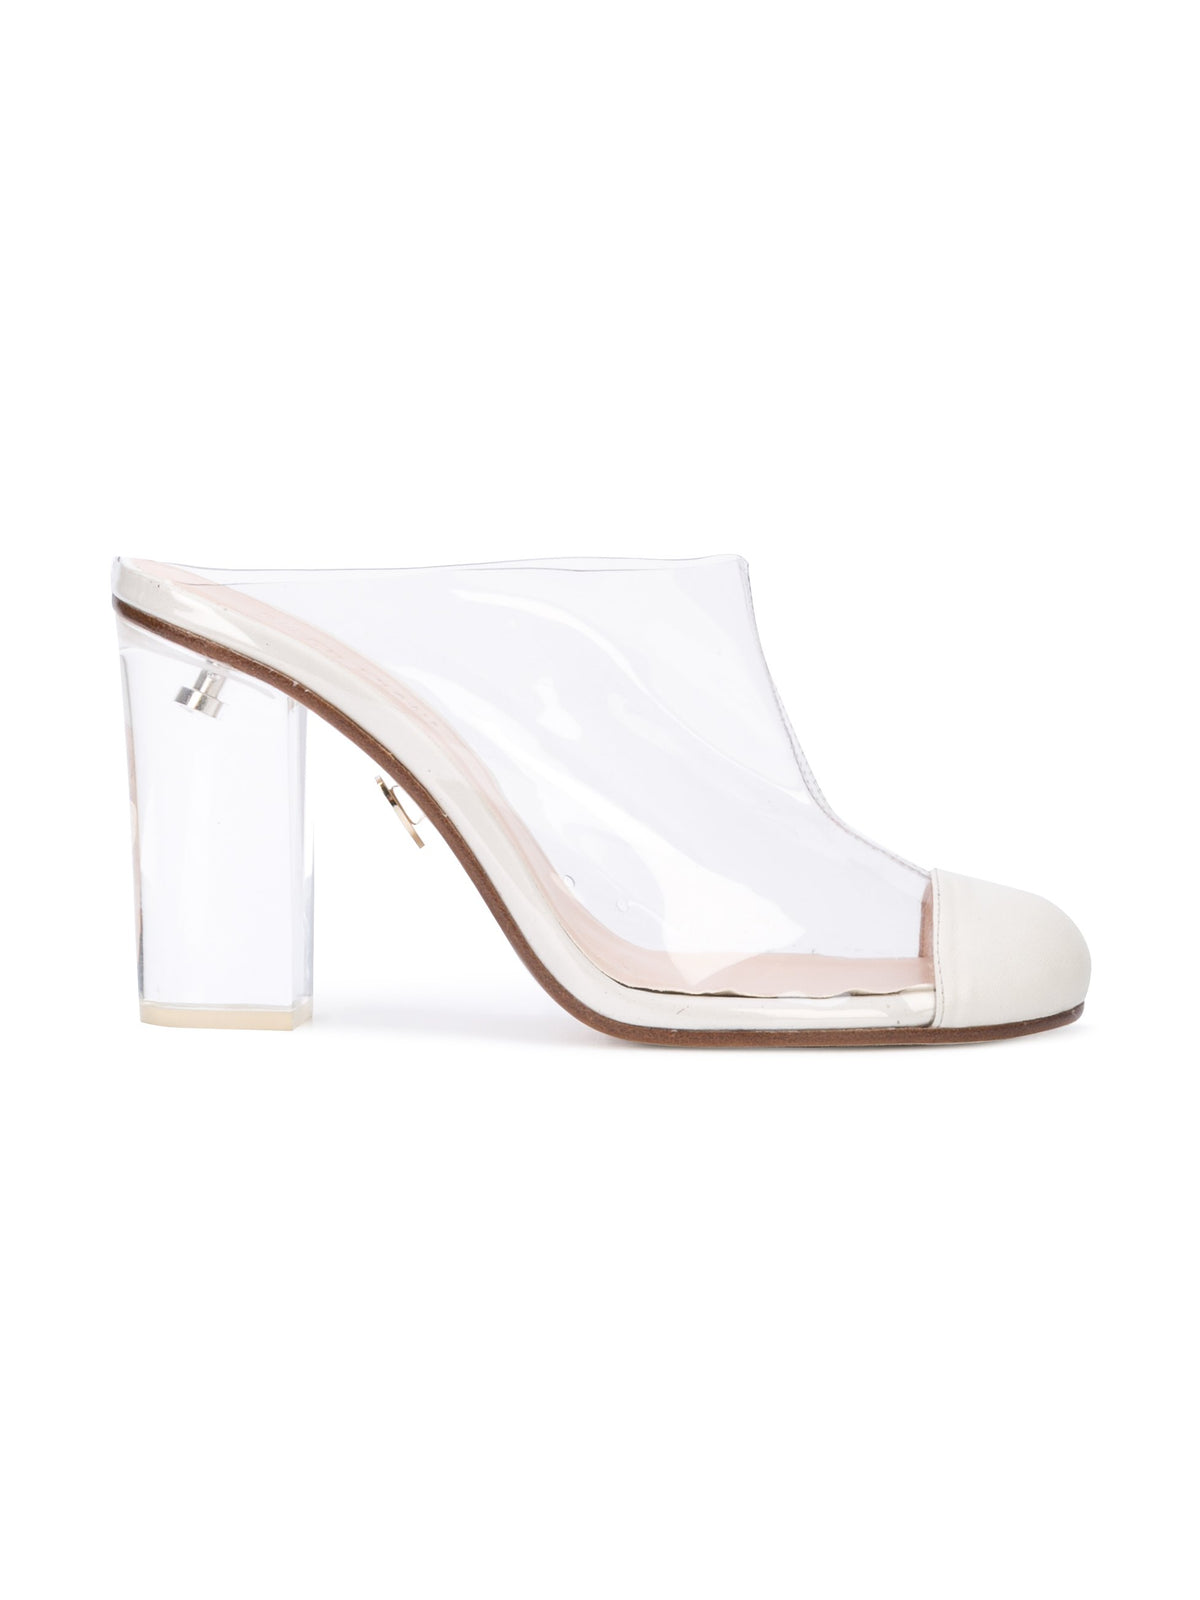 Grease Mule - Pvc and white nappa leather mule, acrylic heel without wraps. Profile View